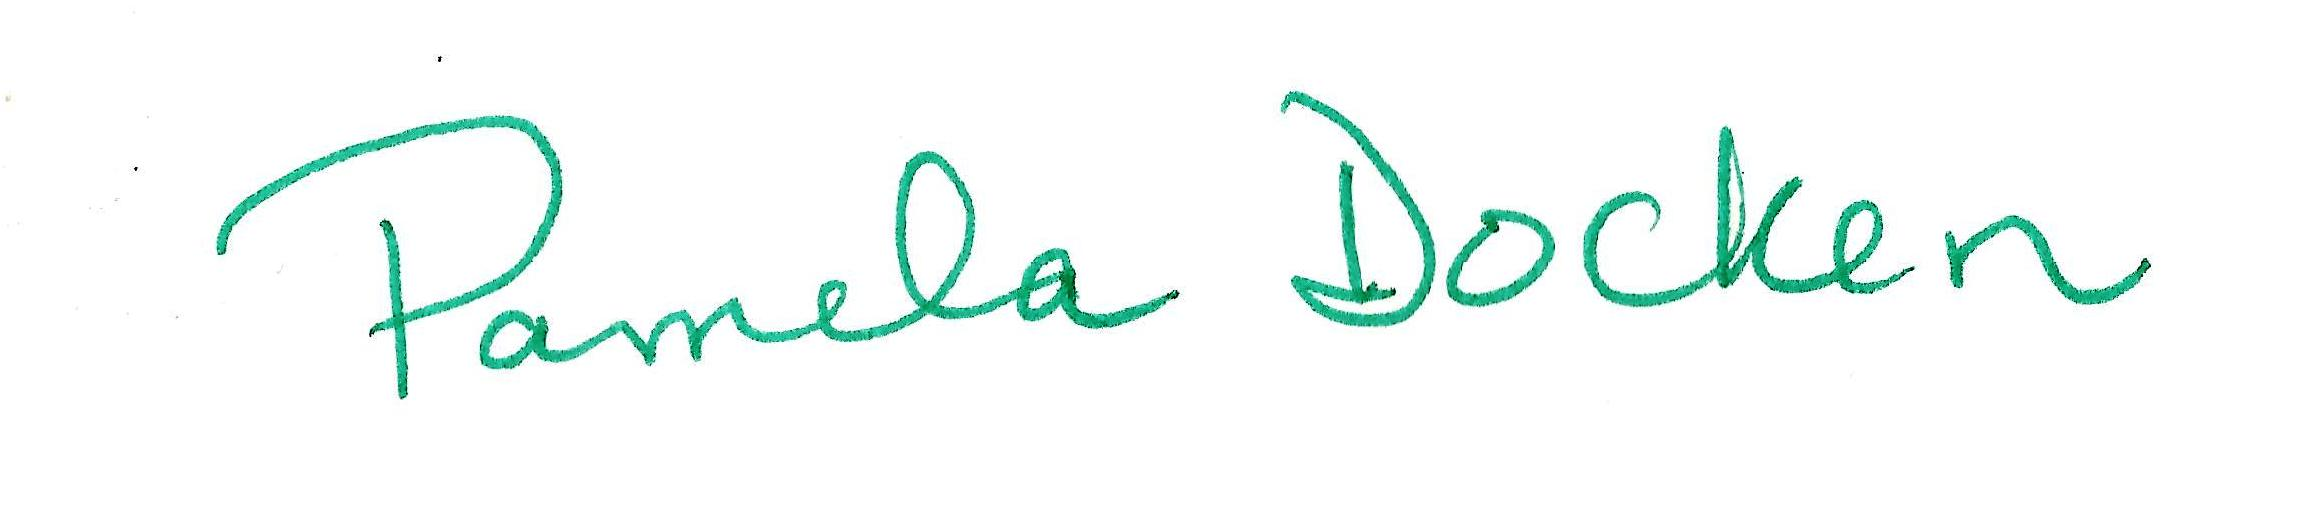 Pamela docken's Signature